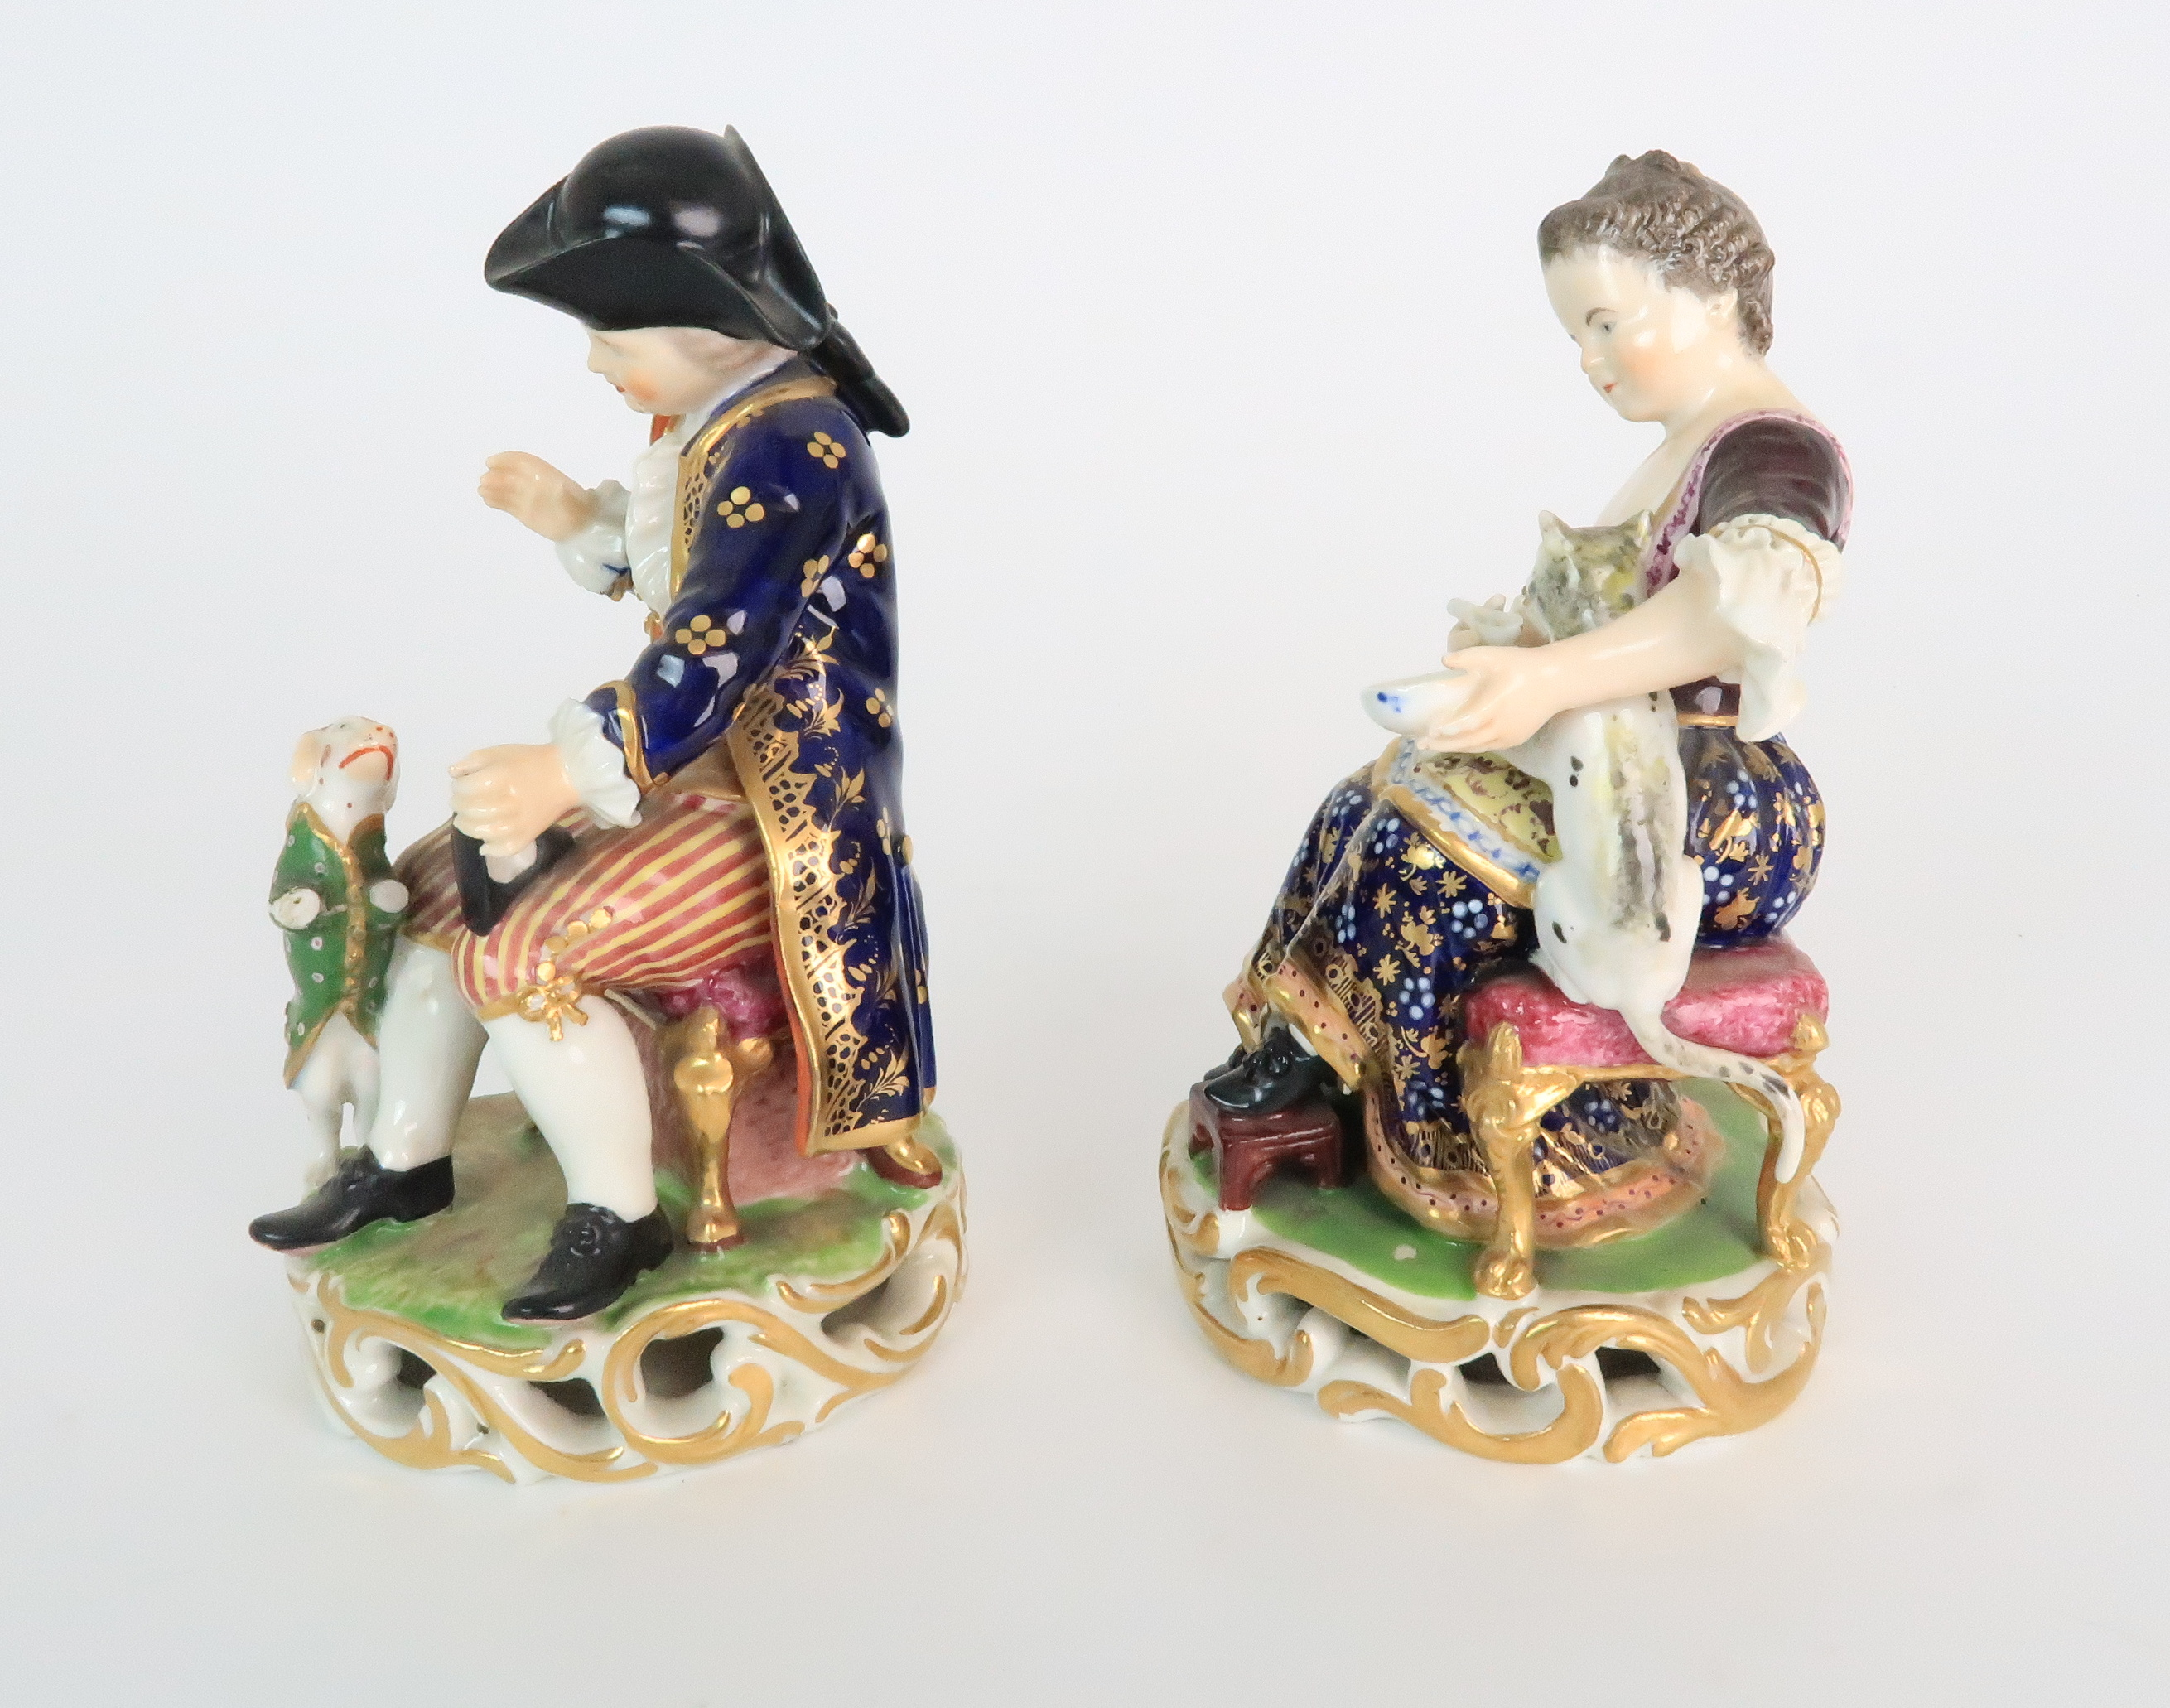 A PAIR OF DERBY PORCELAIN FIGURES early 19th century, modelled as a seated boy playing with a dog - Image 2 of 12